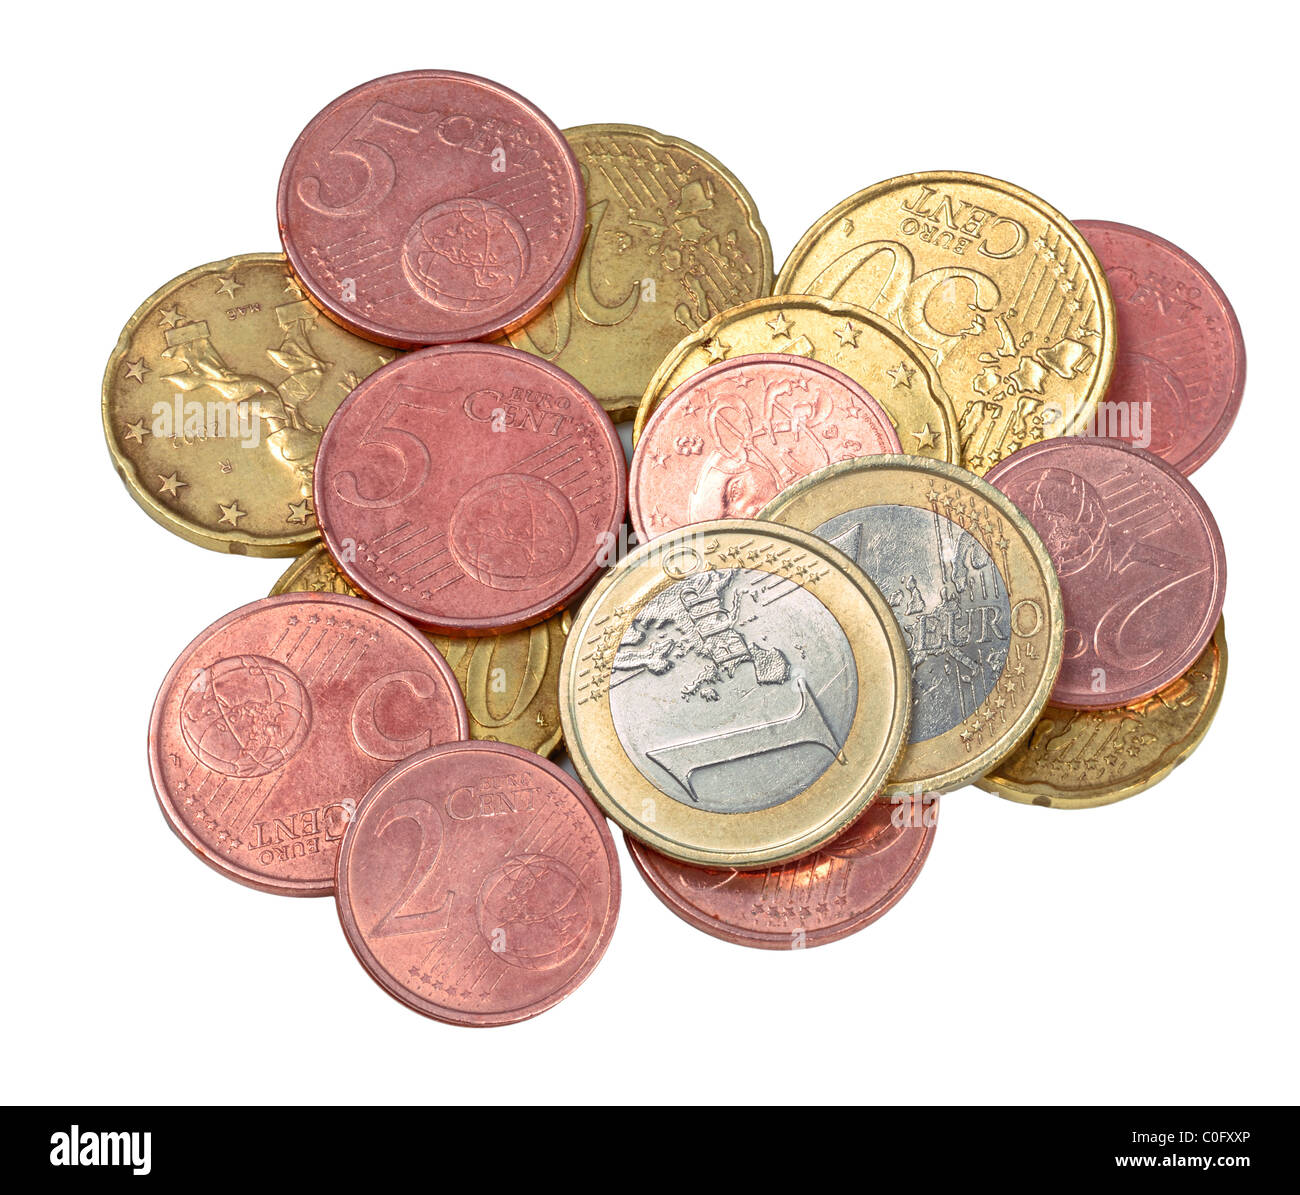 Selection of used contemporary Euro coins, isolated on white - Stock Image